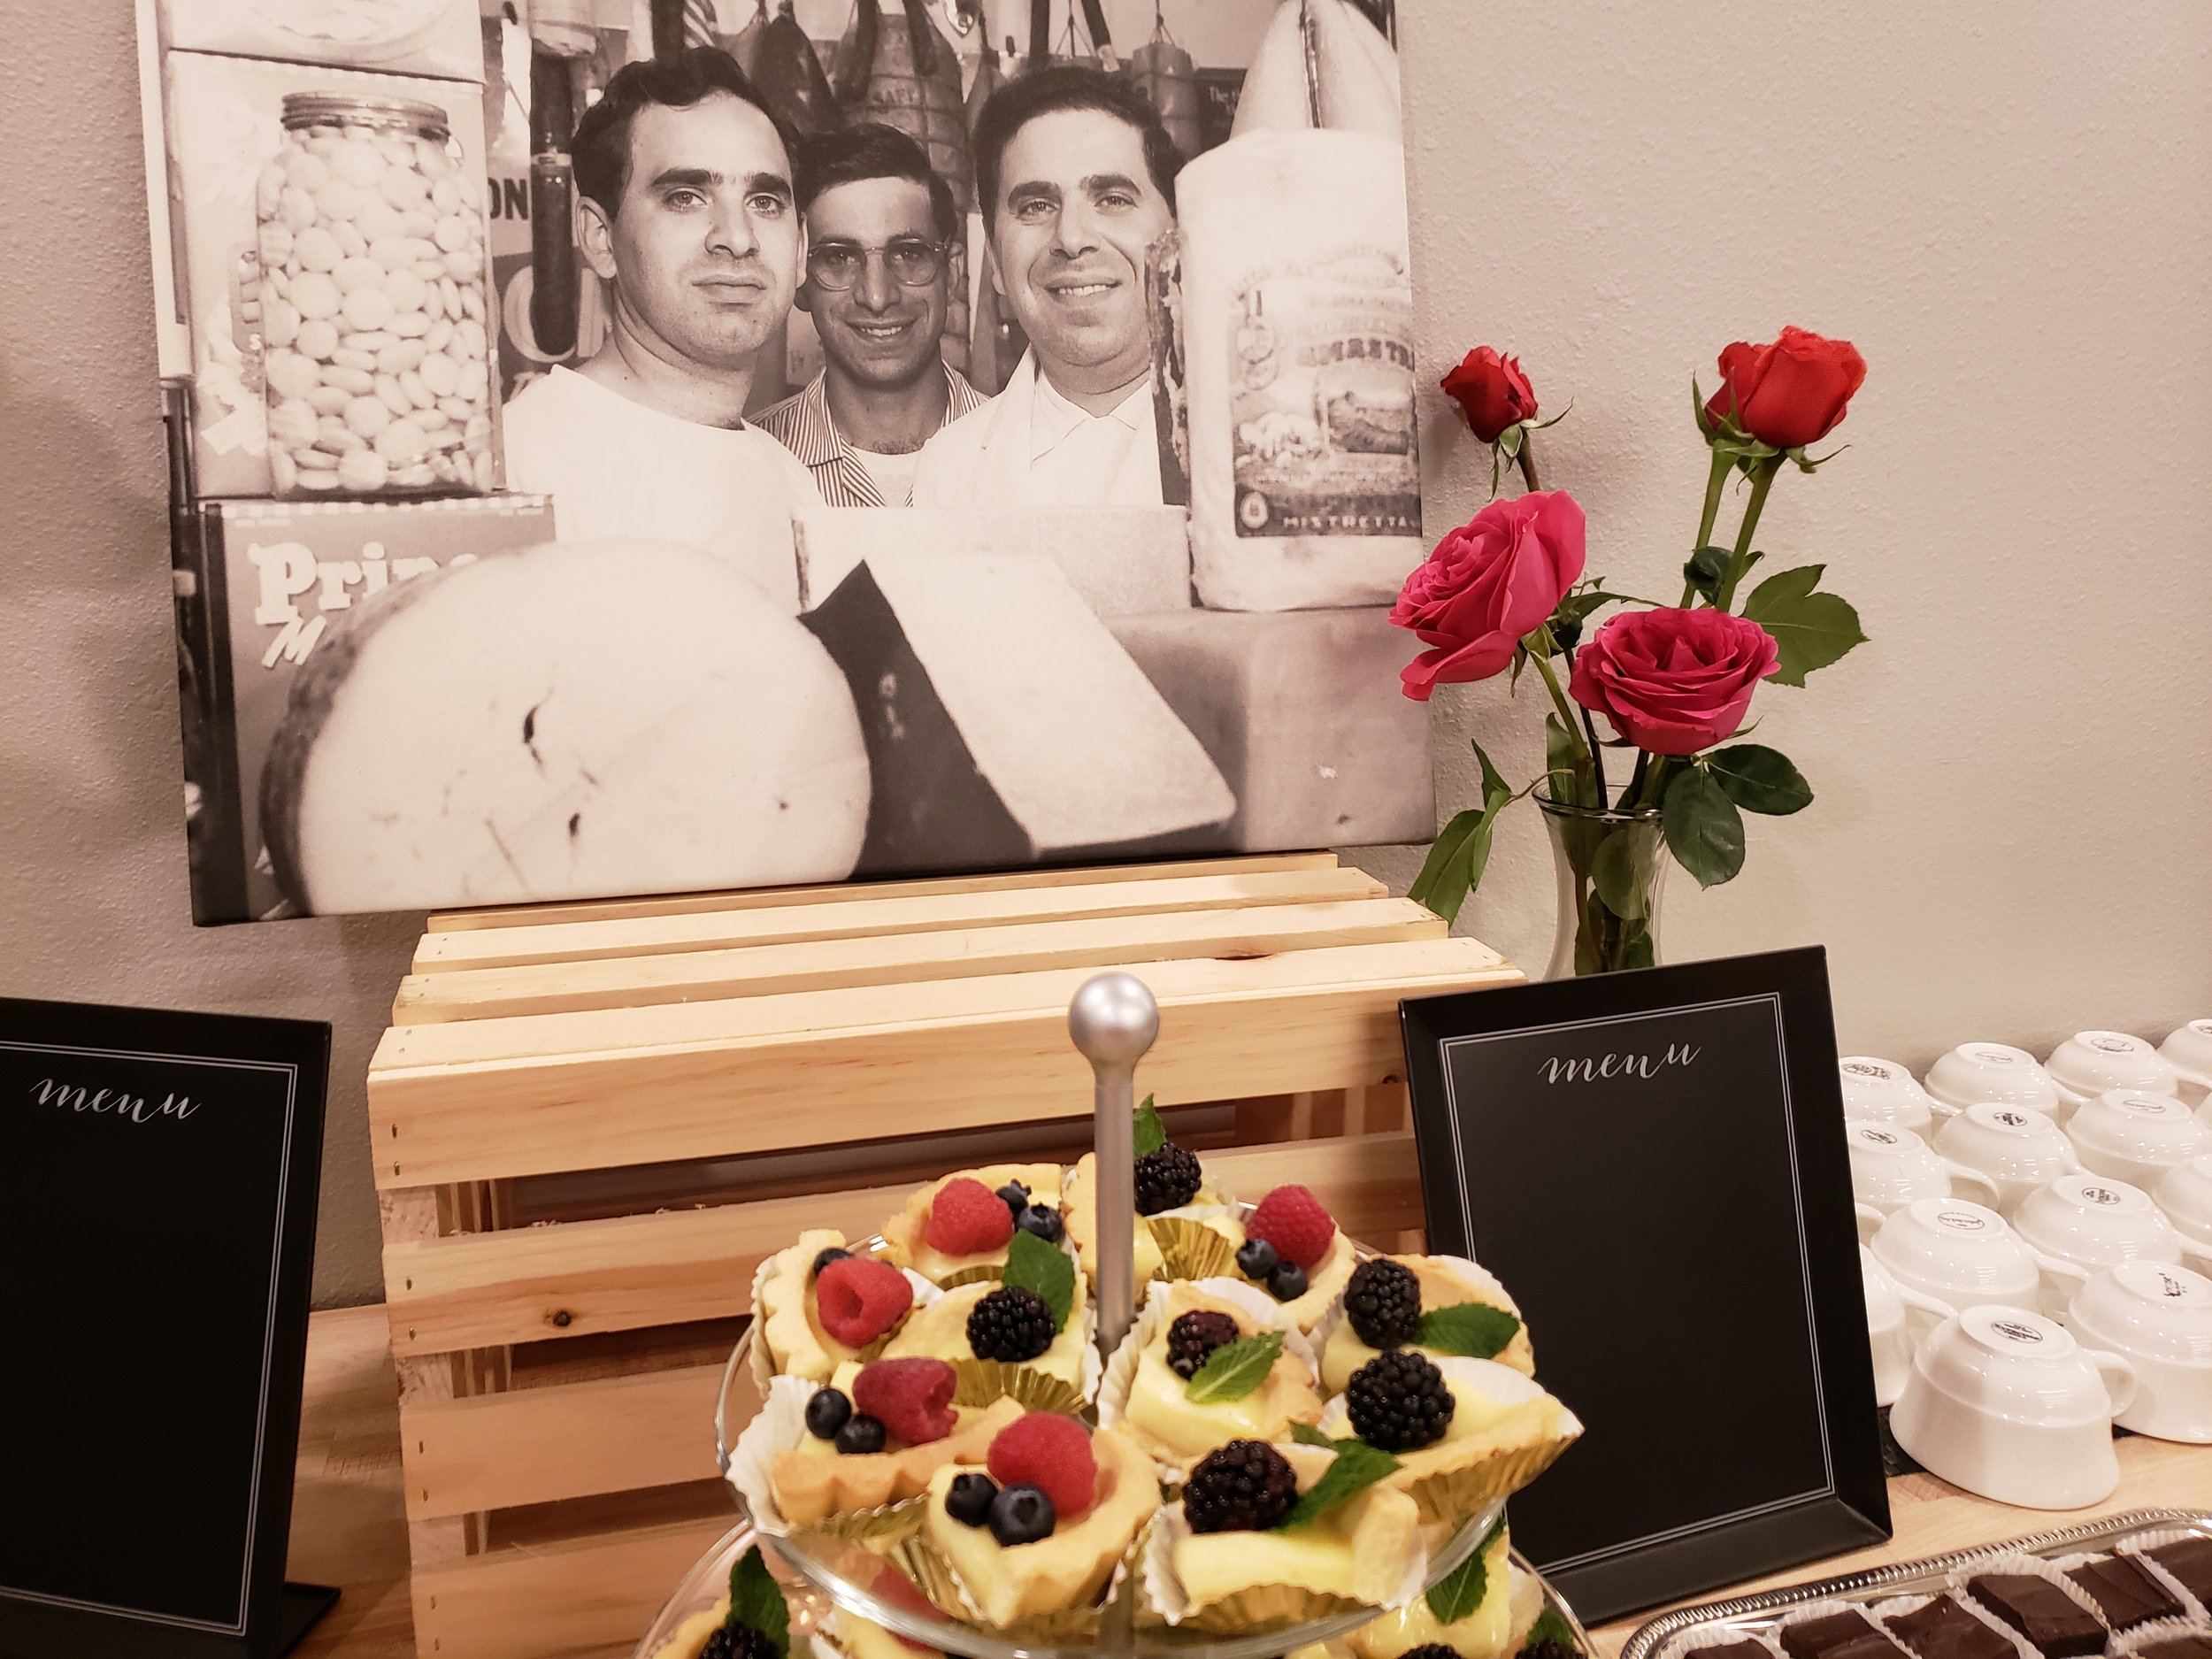 It was Valentine's Day n 1946, that the three Glorioso brothers opened an Italian grocery business on Brady Street.